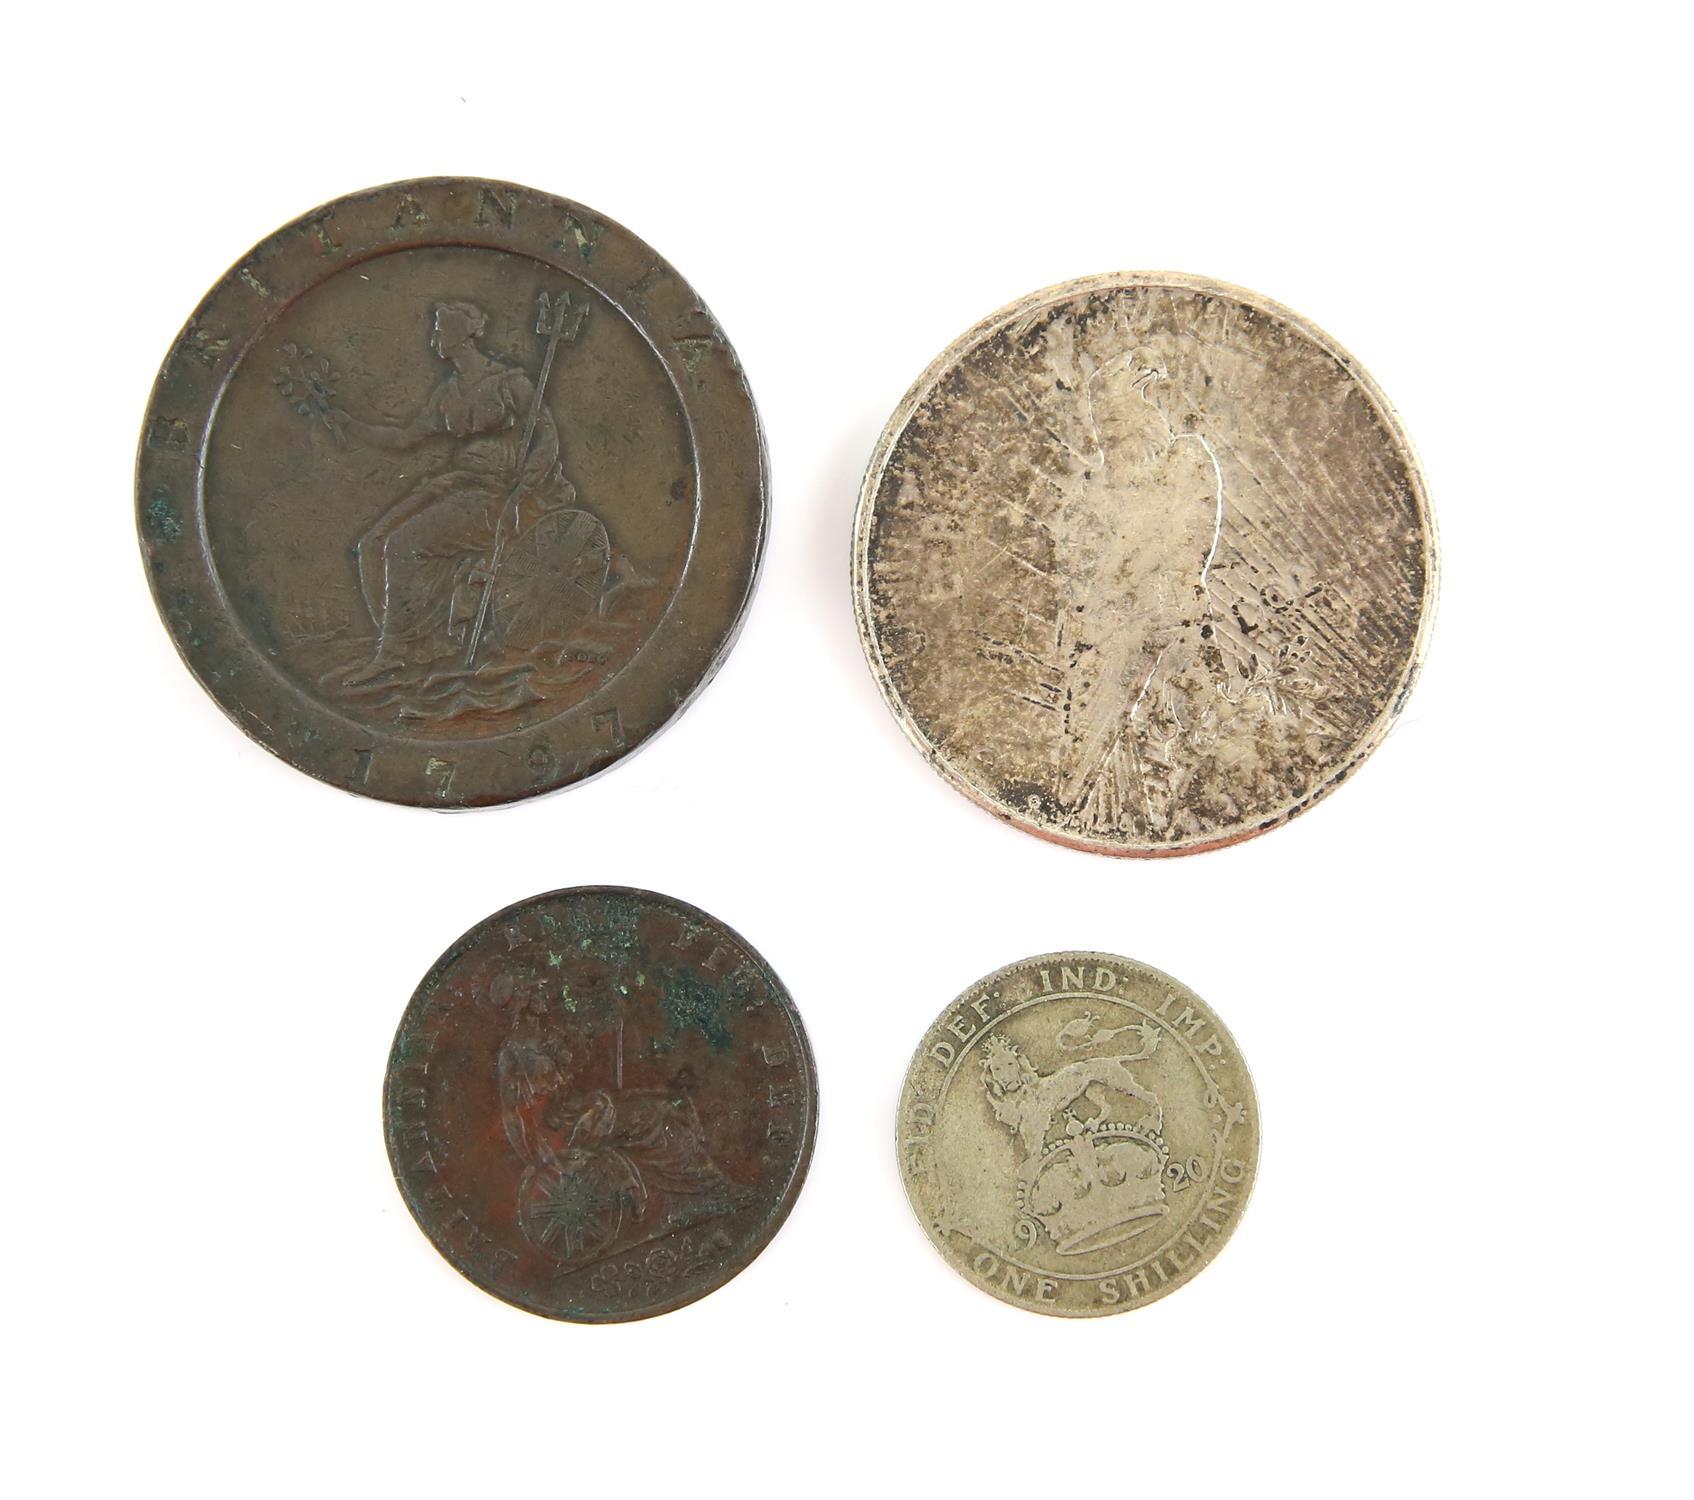 Four coins including a British cartwheel twopence 1797, a Victoria halfpenny 1854 near very fine, - Image 2 of 2